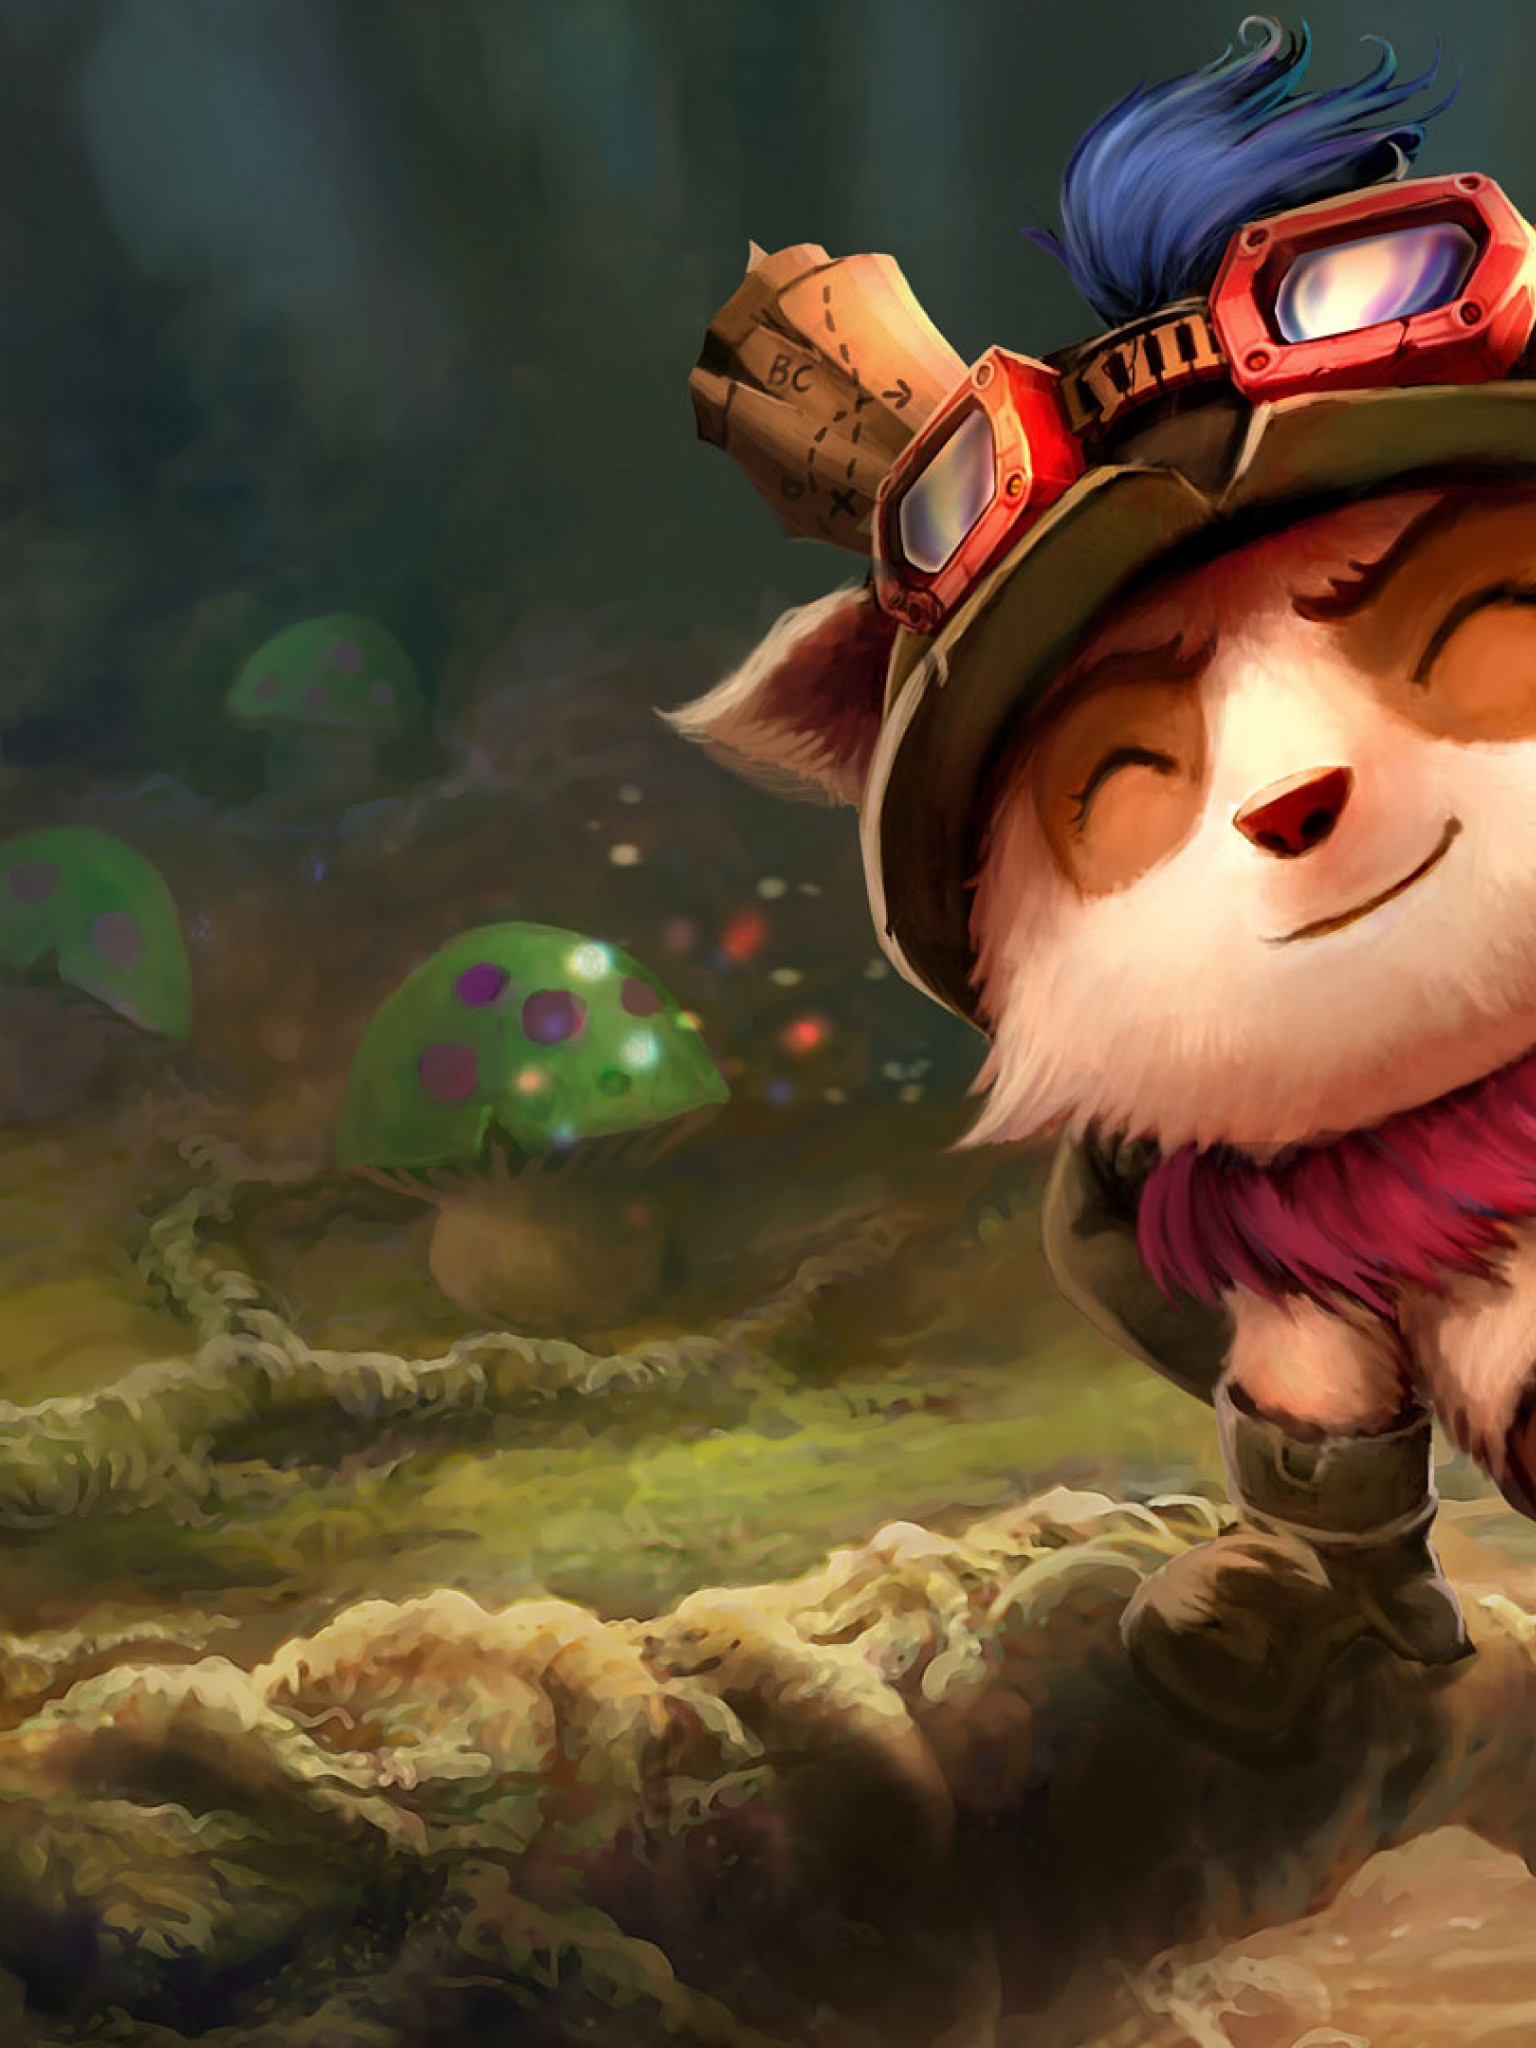 League Of Legends Teemo Hd Wallpaper For Desktop And Mobiles